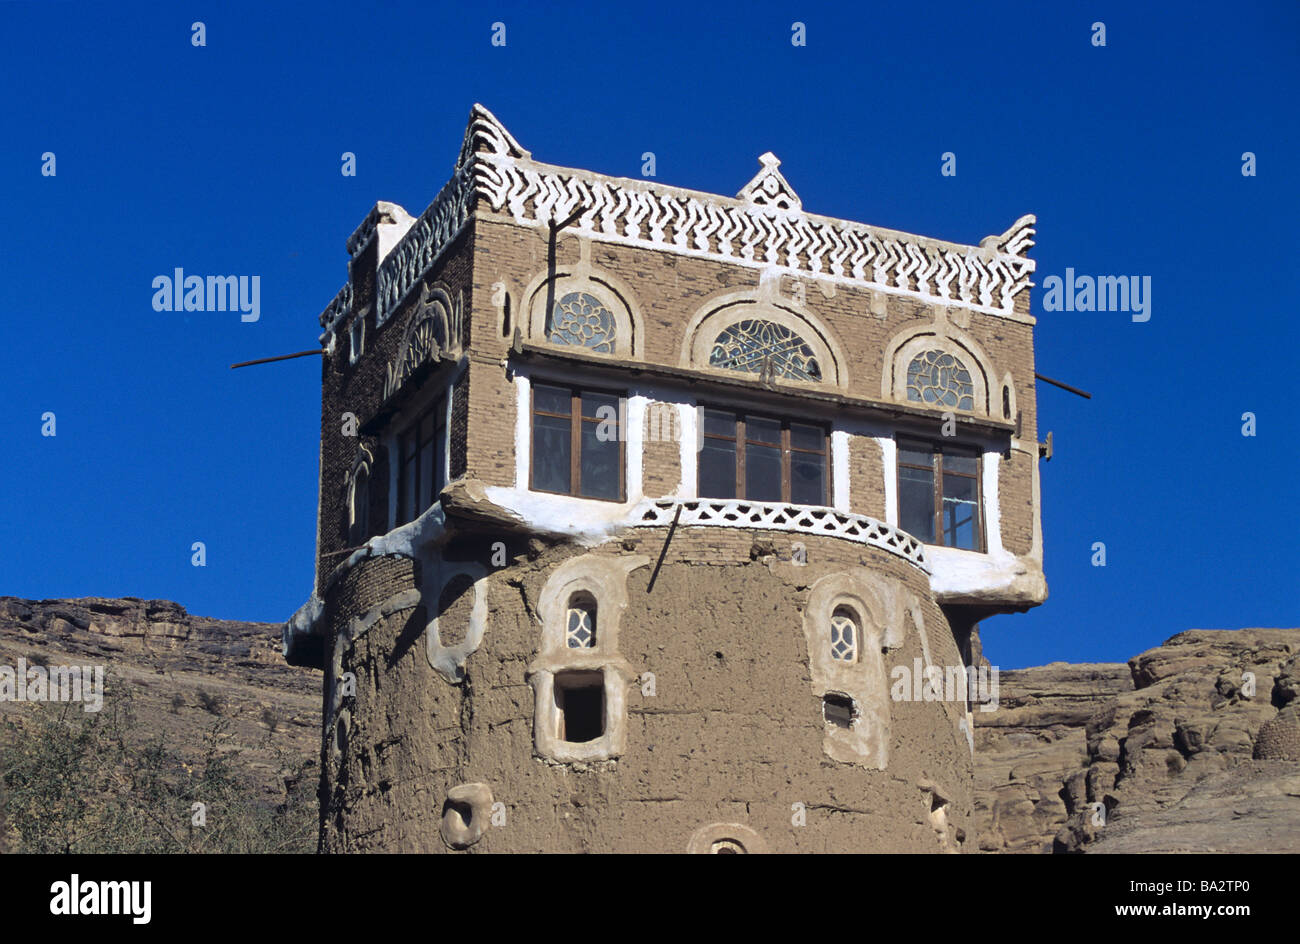 Square Room on Top of Round Adobe Mud Brick Earth Tower House, Wadi Dhar or Dhahr, near Sana'a or San'a, - Stock Image